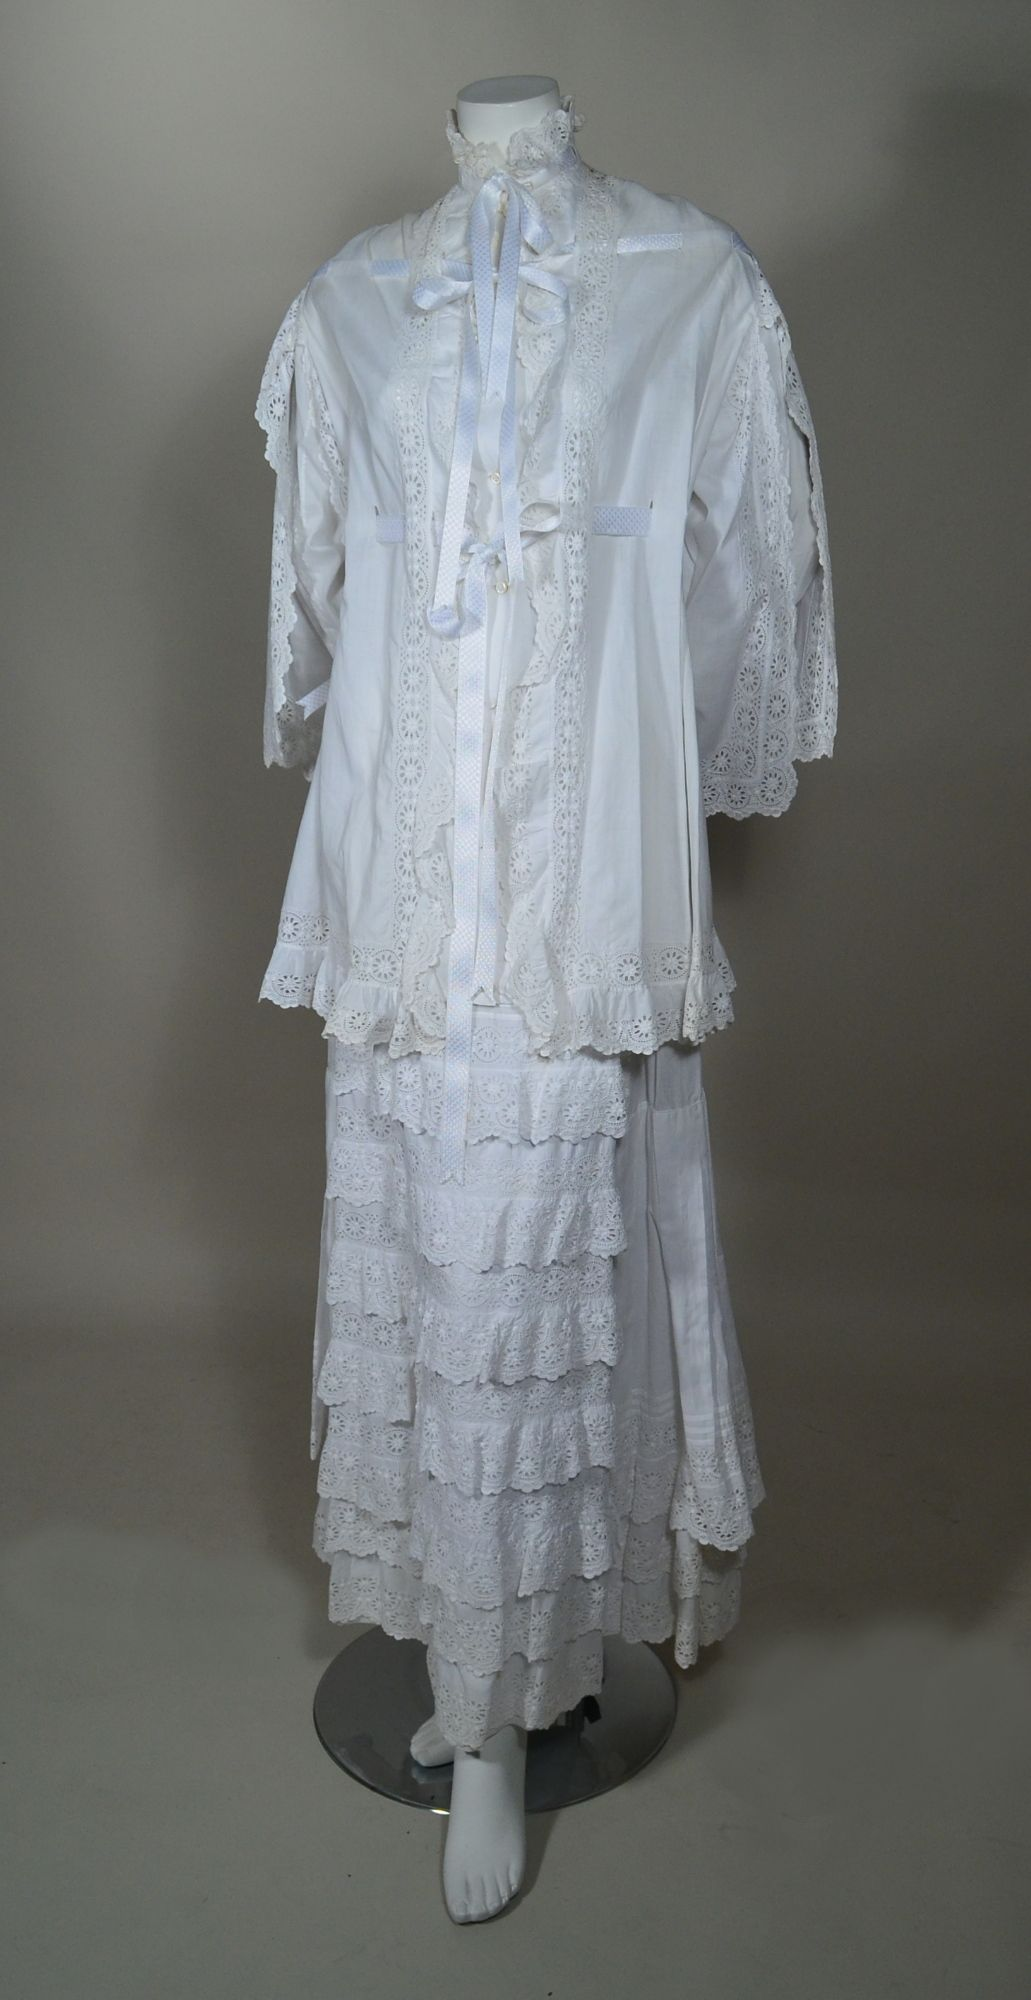 1870's VINTAGE INTRICATE WHITE WORK SWISS EMBROIDERED EYELET AND COTTON LAWN TWO PIECE MORNING GOWN. Front